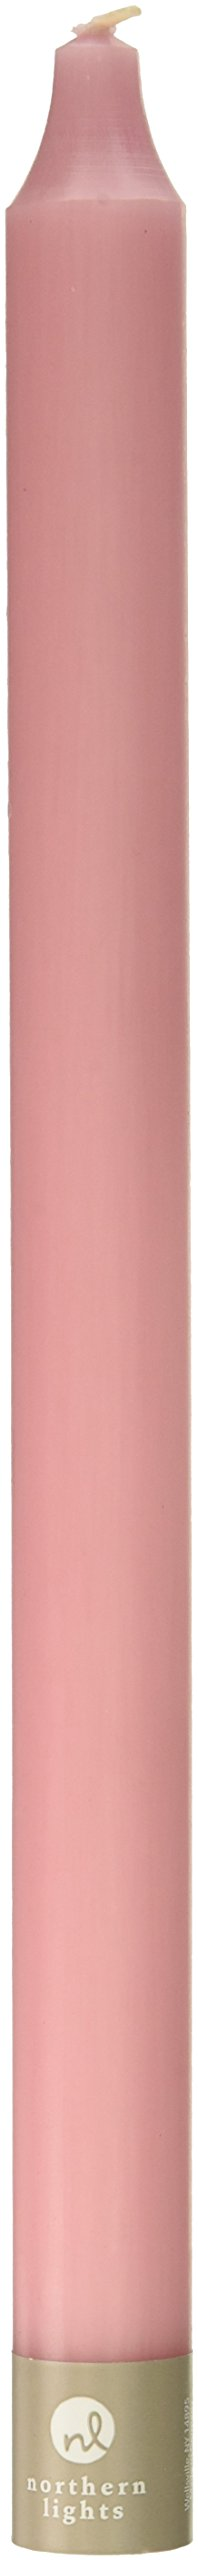 Northern Lights Candles Nlc Premium Tapers 12Pc Soft Pink 12 Inch